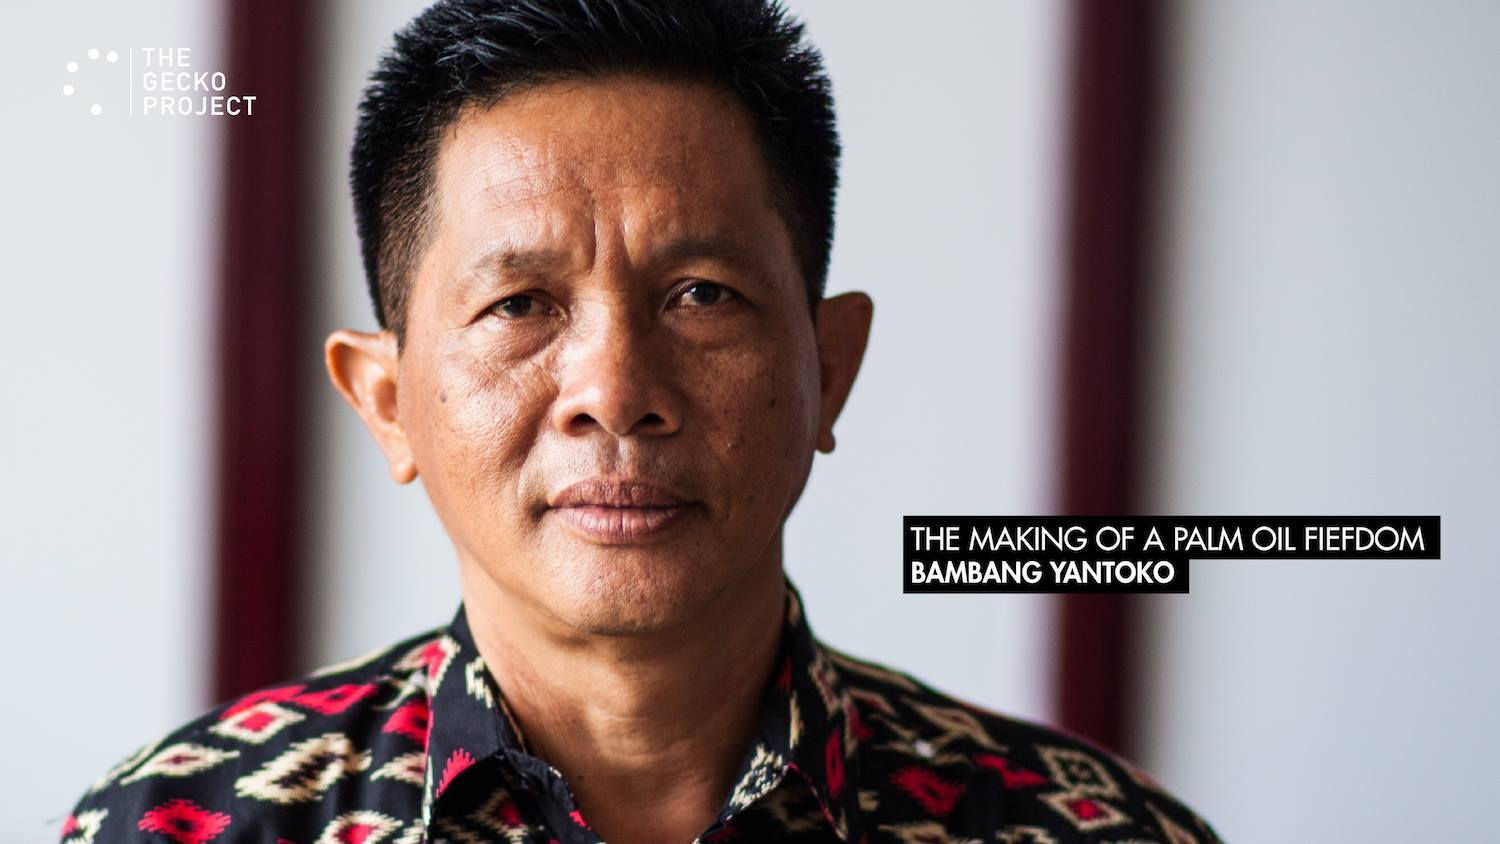 Why were poor farmers cut out of Borneo's palm oil boom?